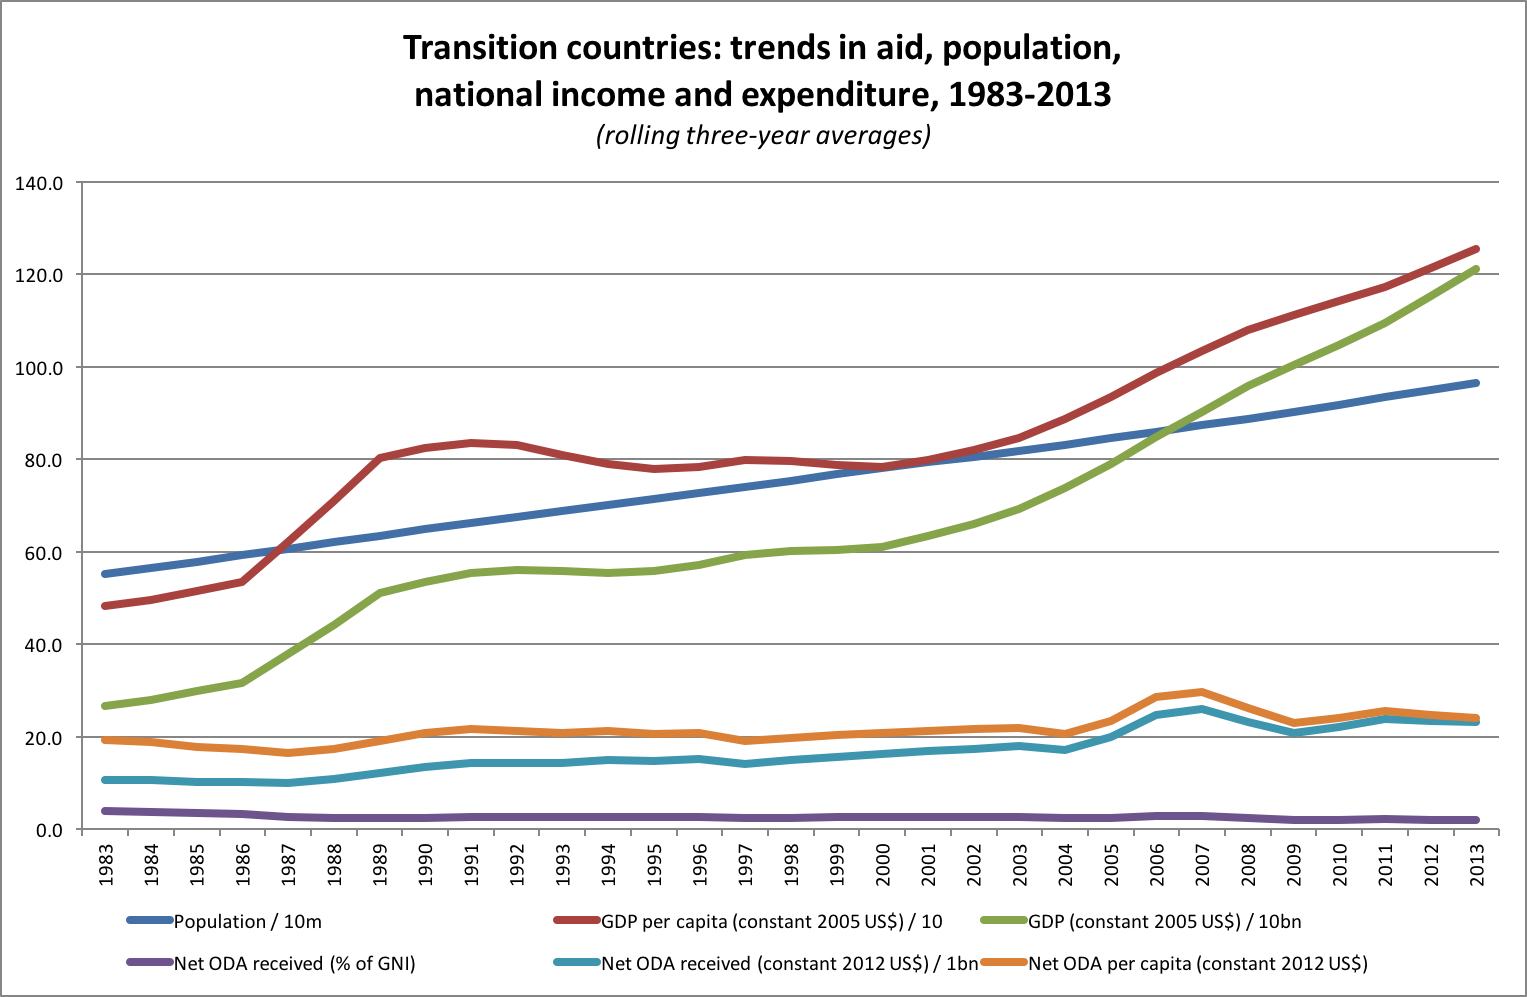 Transition countries: trends in aid, population, national income and expenditure, 1983-2013